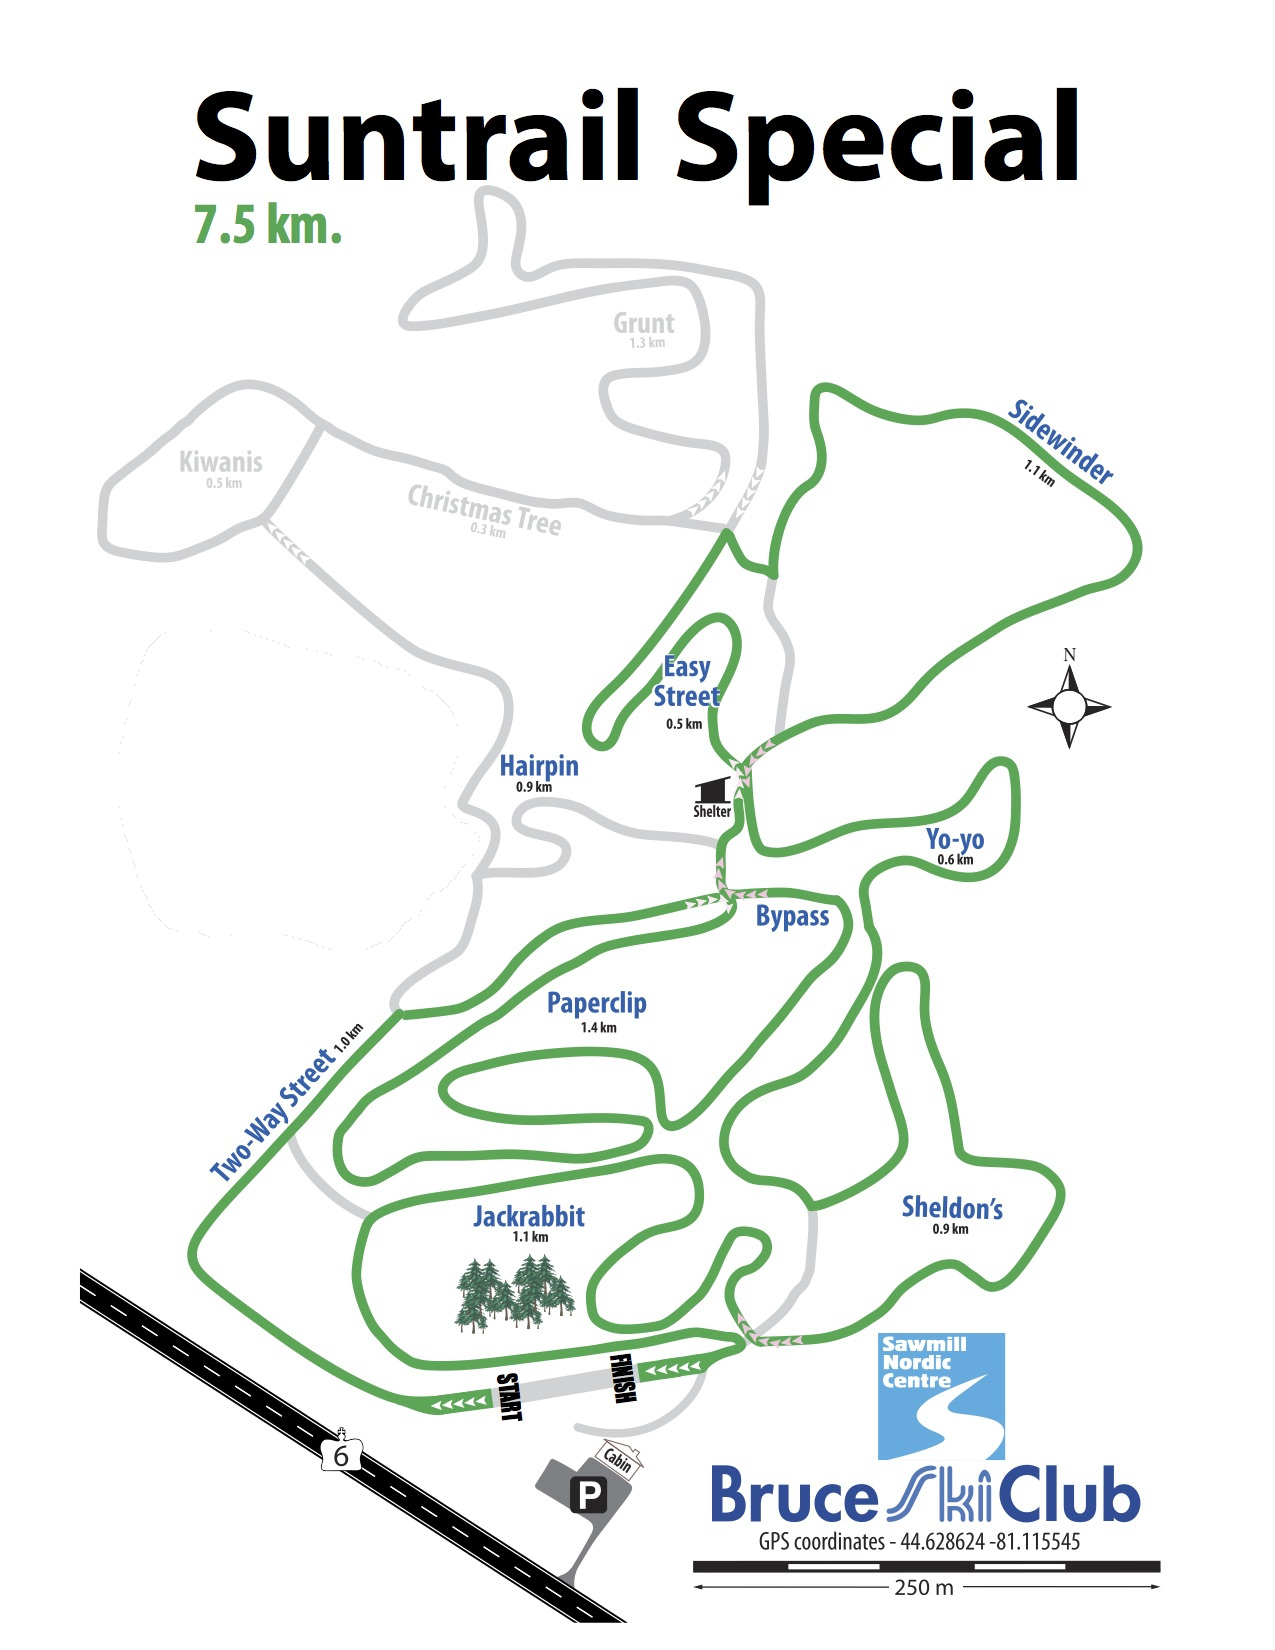 2019 Suntrail Special Cross-Country Ski Race Map – 7.5 km